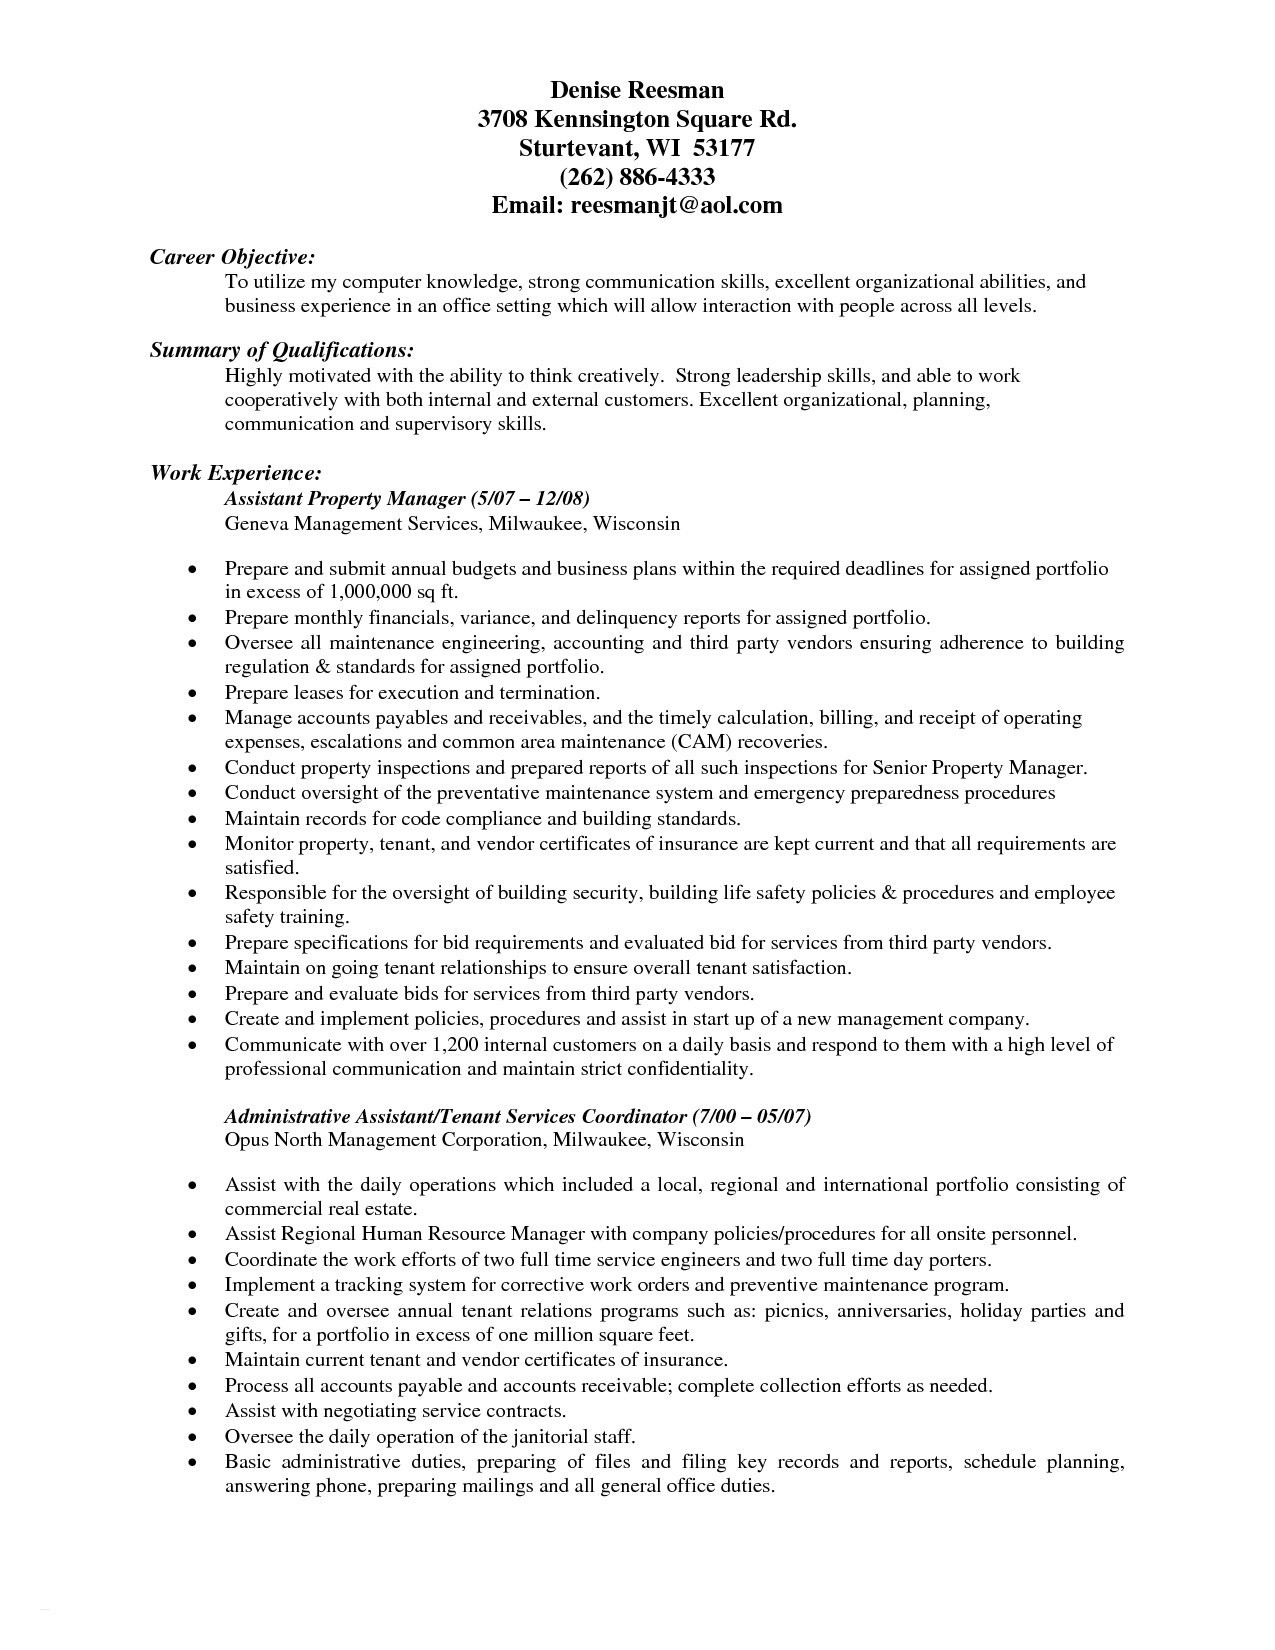 Assistant Property Manager Resume Objective - Property Management Resume Keywords Example Best Resumes for